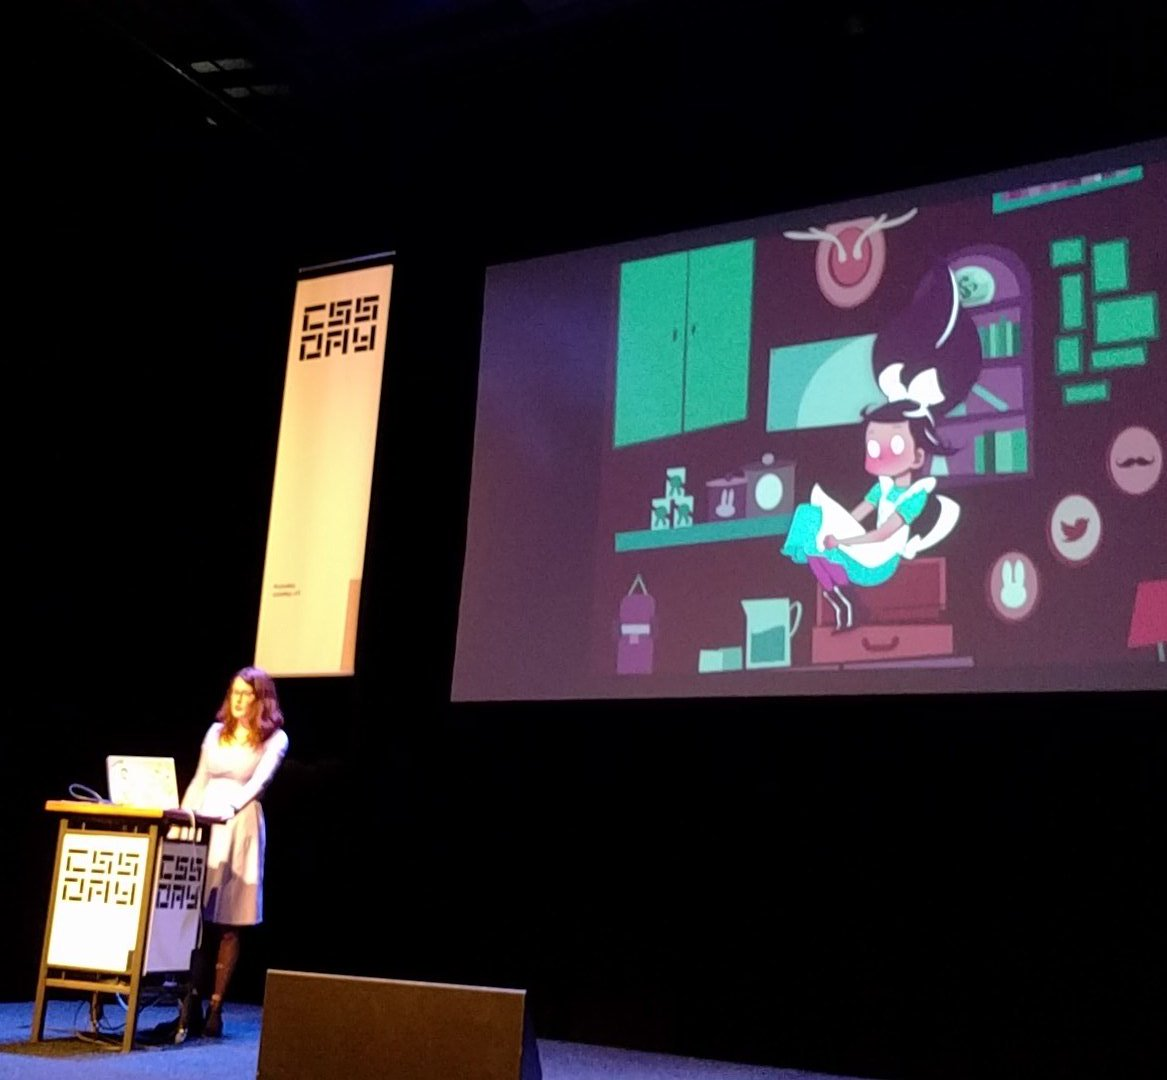 10mins in and already super inspired, fangirling over @rachelnabors slides, content and beautifully delivered talk #cssday https://t.co/QvbTq8TgUO